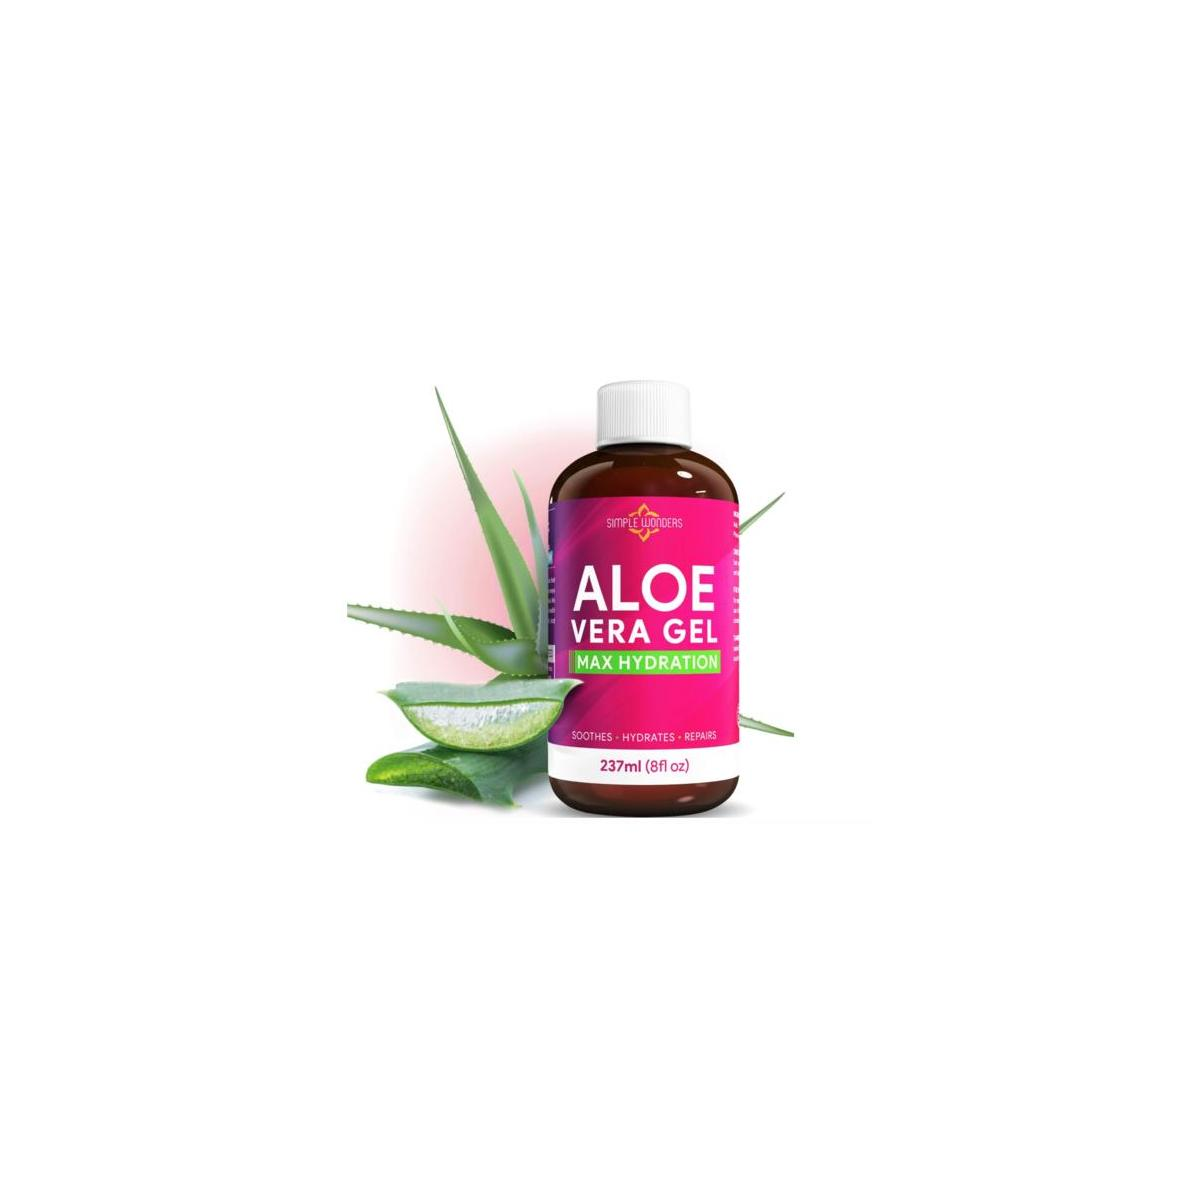 Aloe Vera Gel Rebates Rebatekey